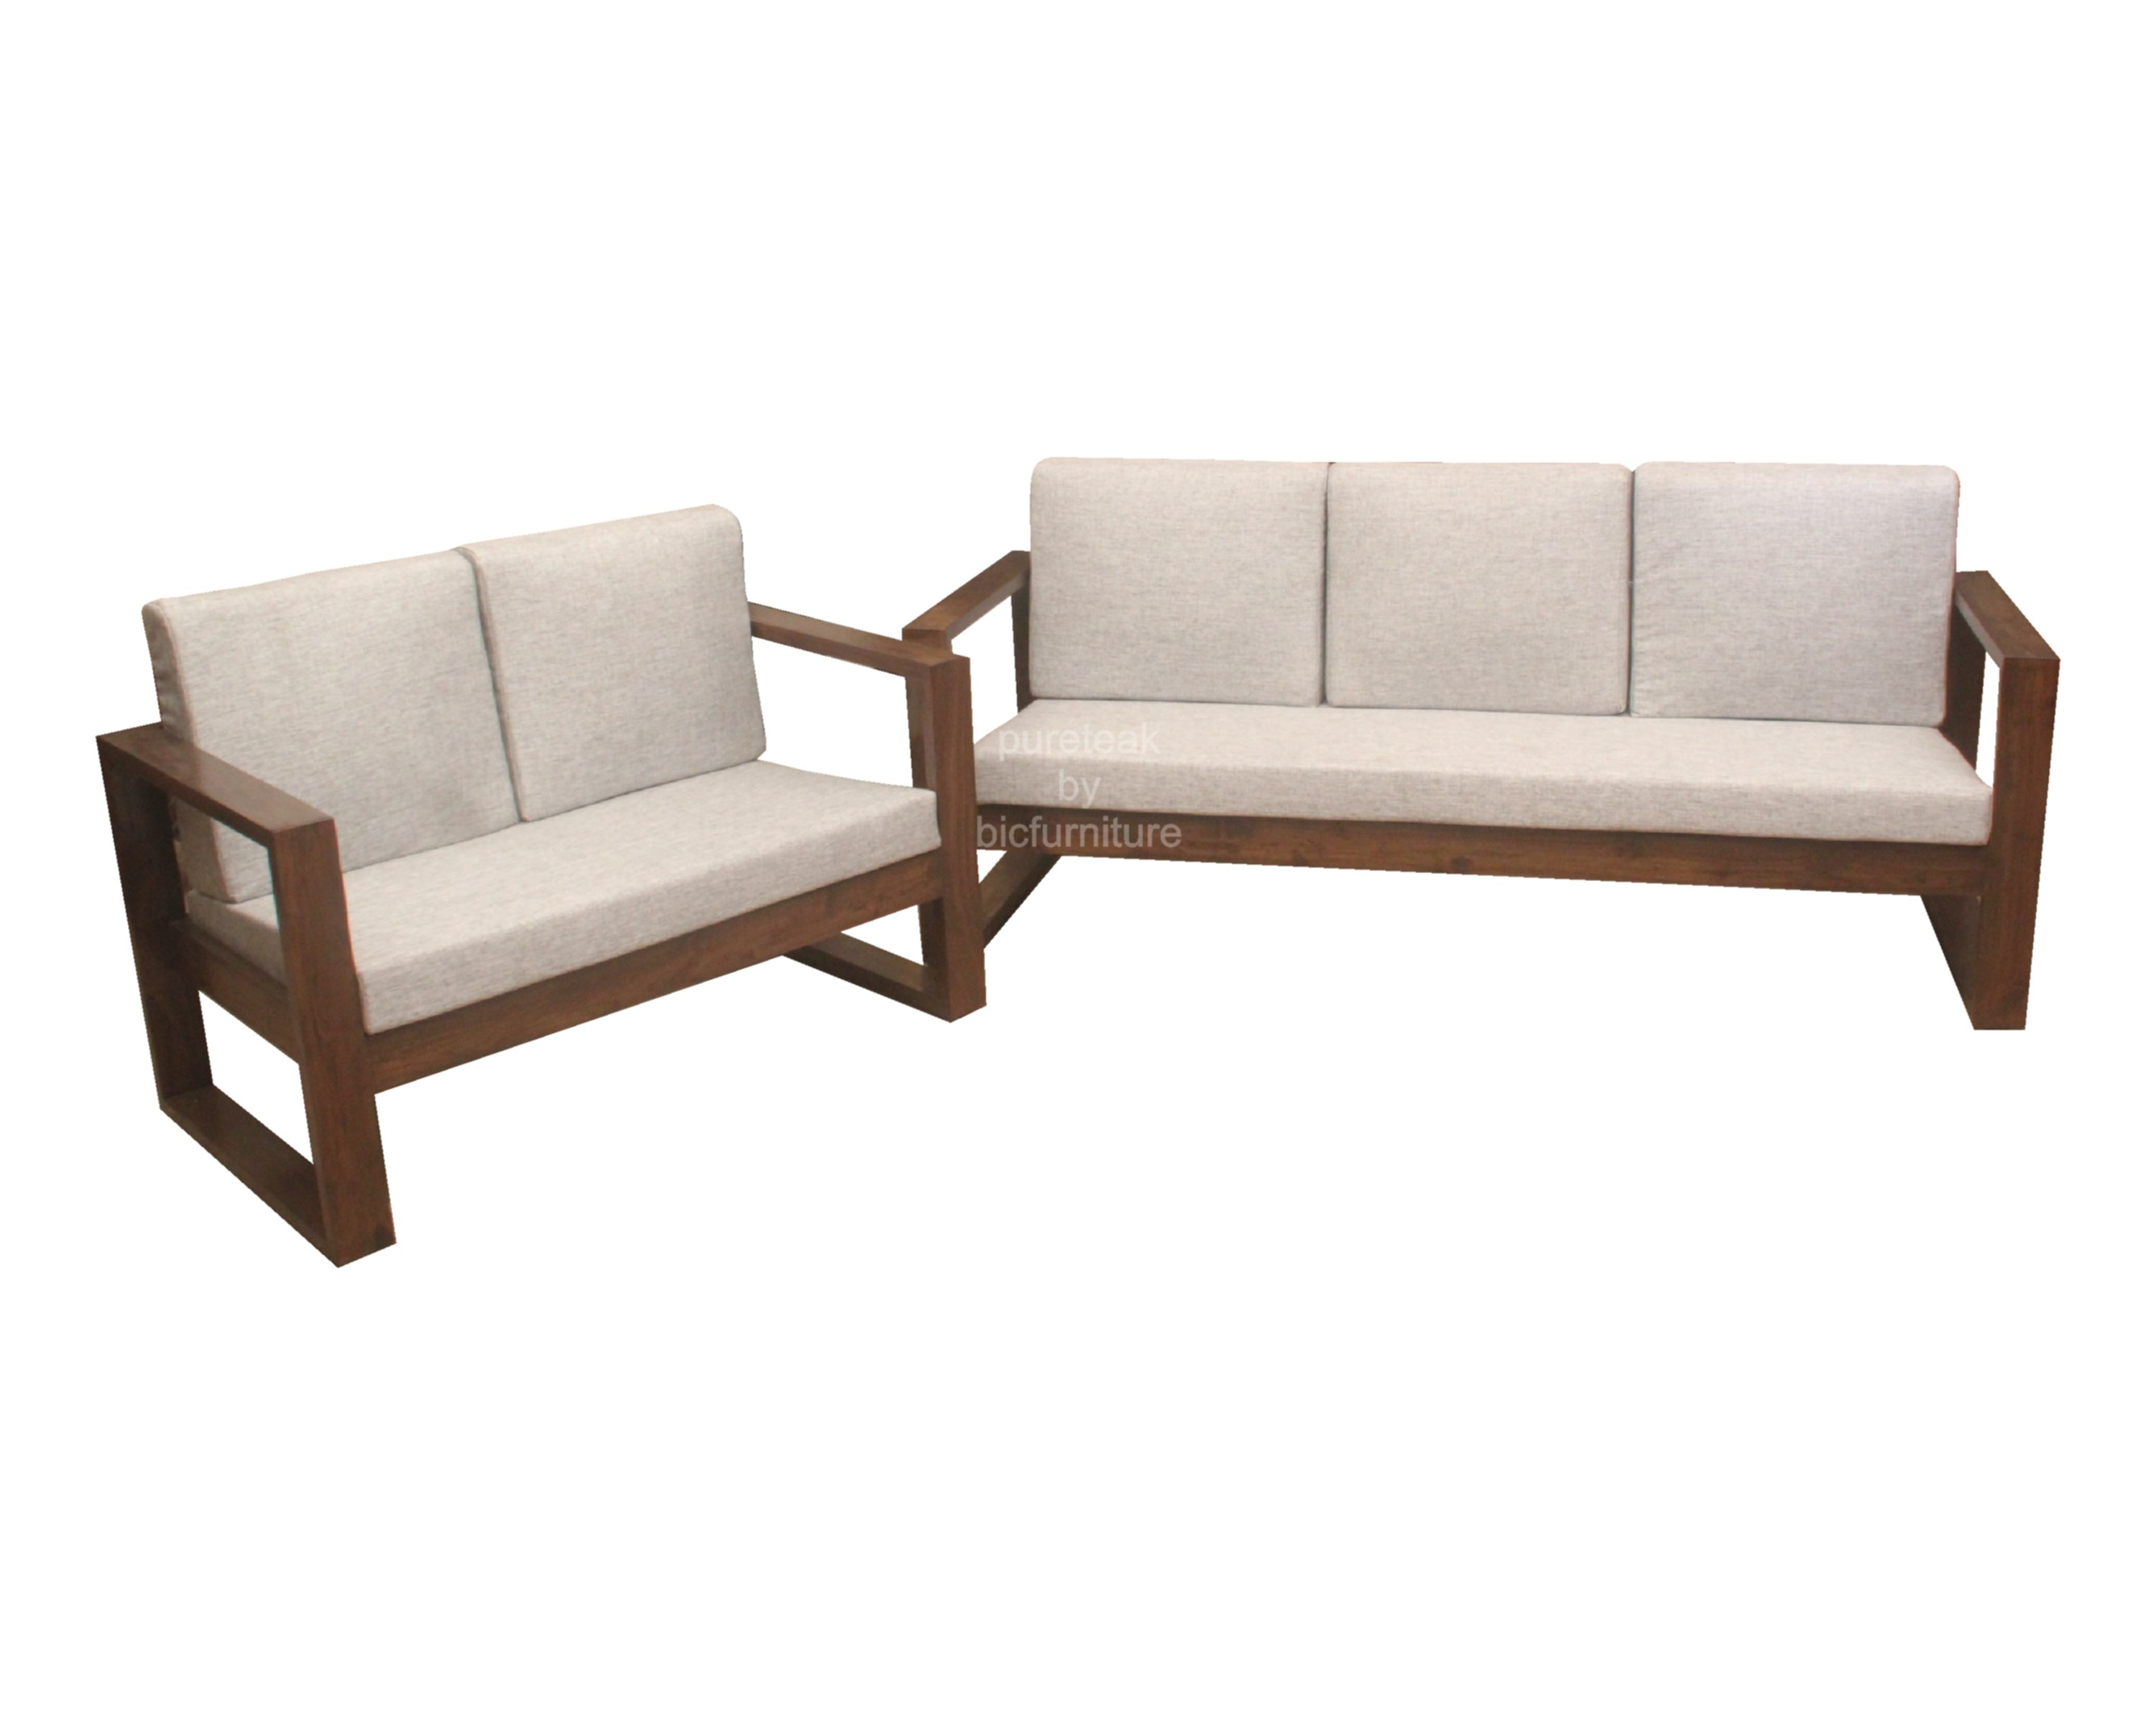 Wooden Sofa Set In Simple Design (WS 67) Details | BIC Furniture India